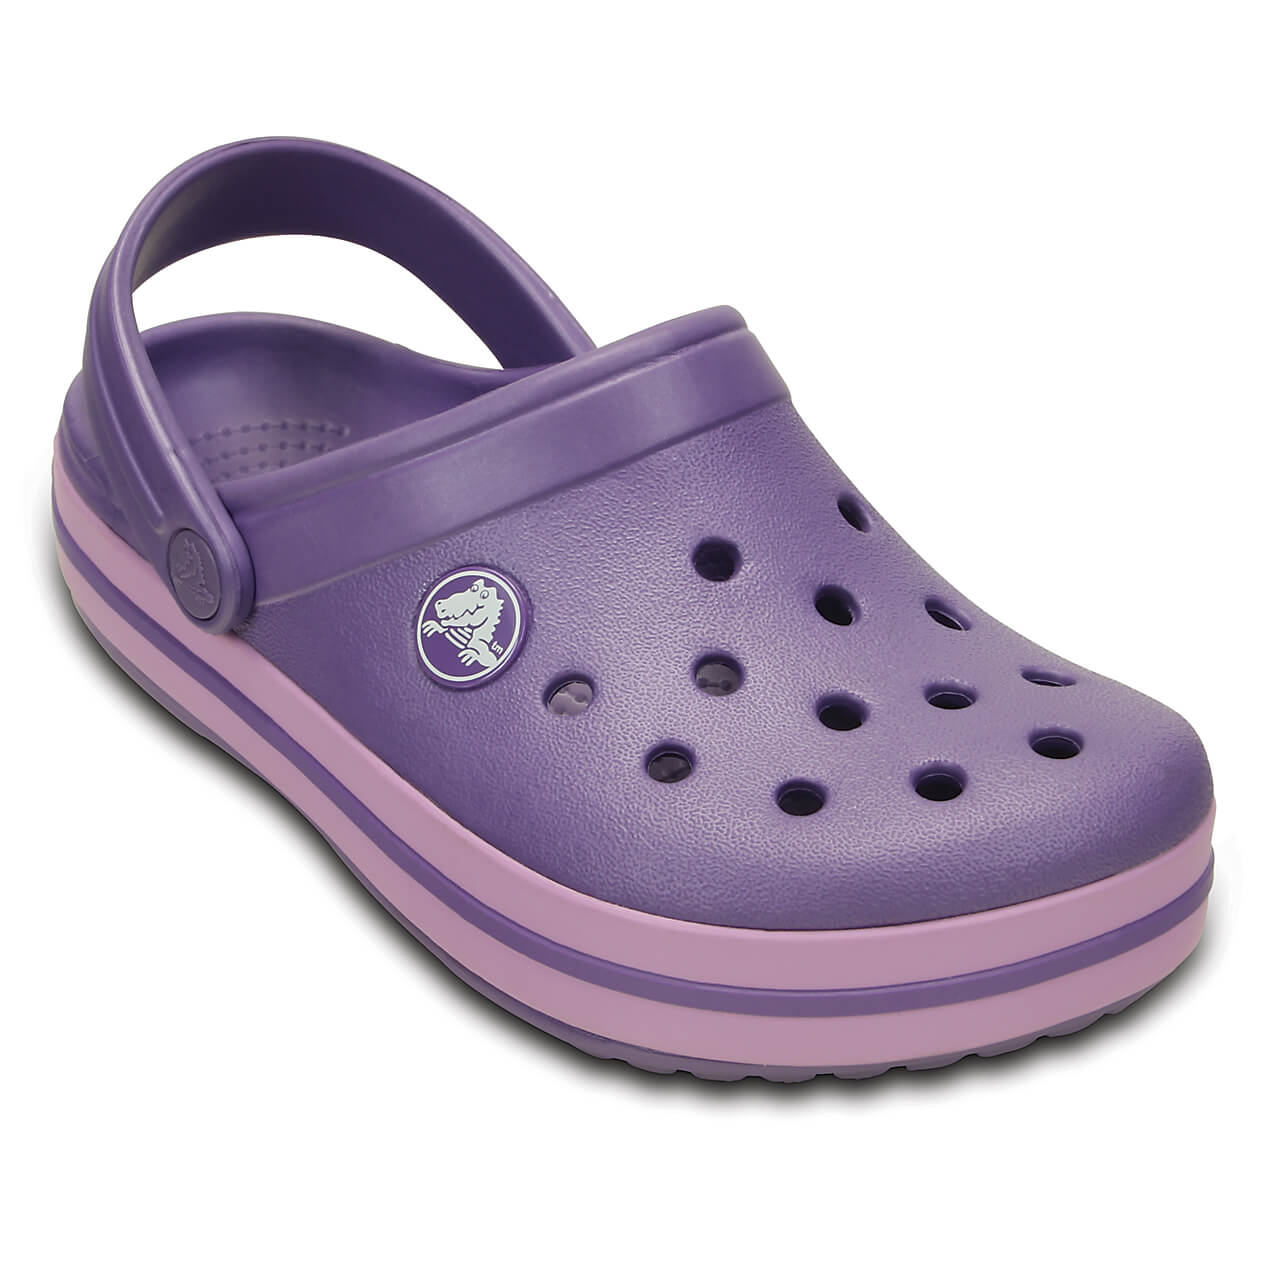 Free Ship & Free Return Crocs LiteRide Slide Shoes The LiteRide Slide is part of.